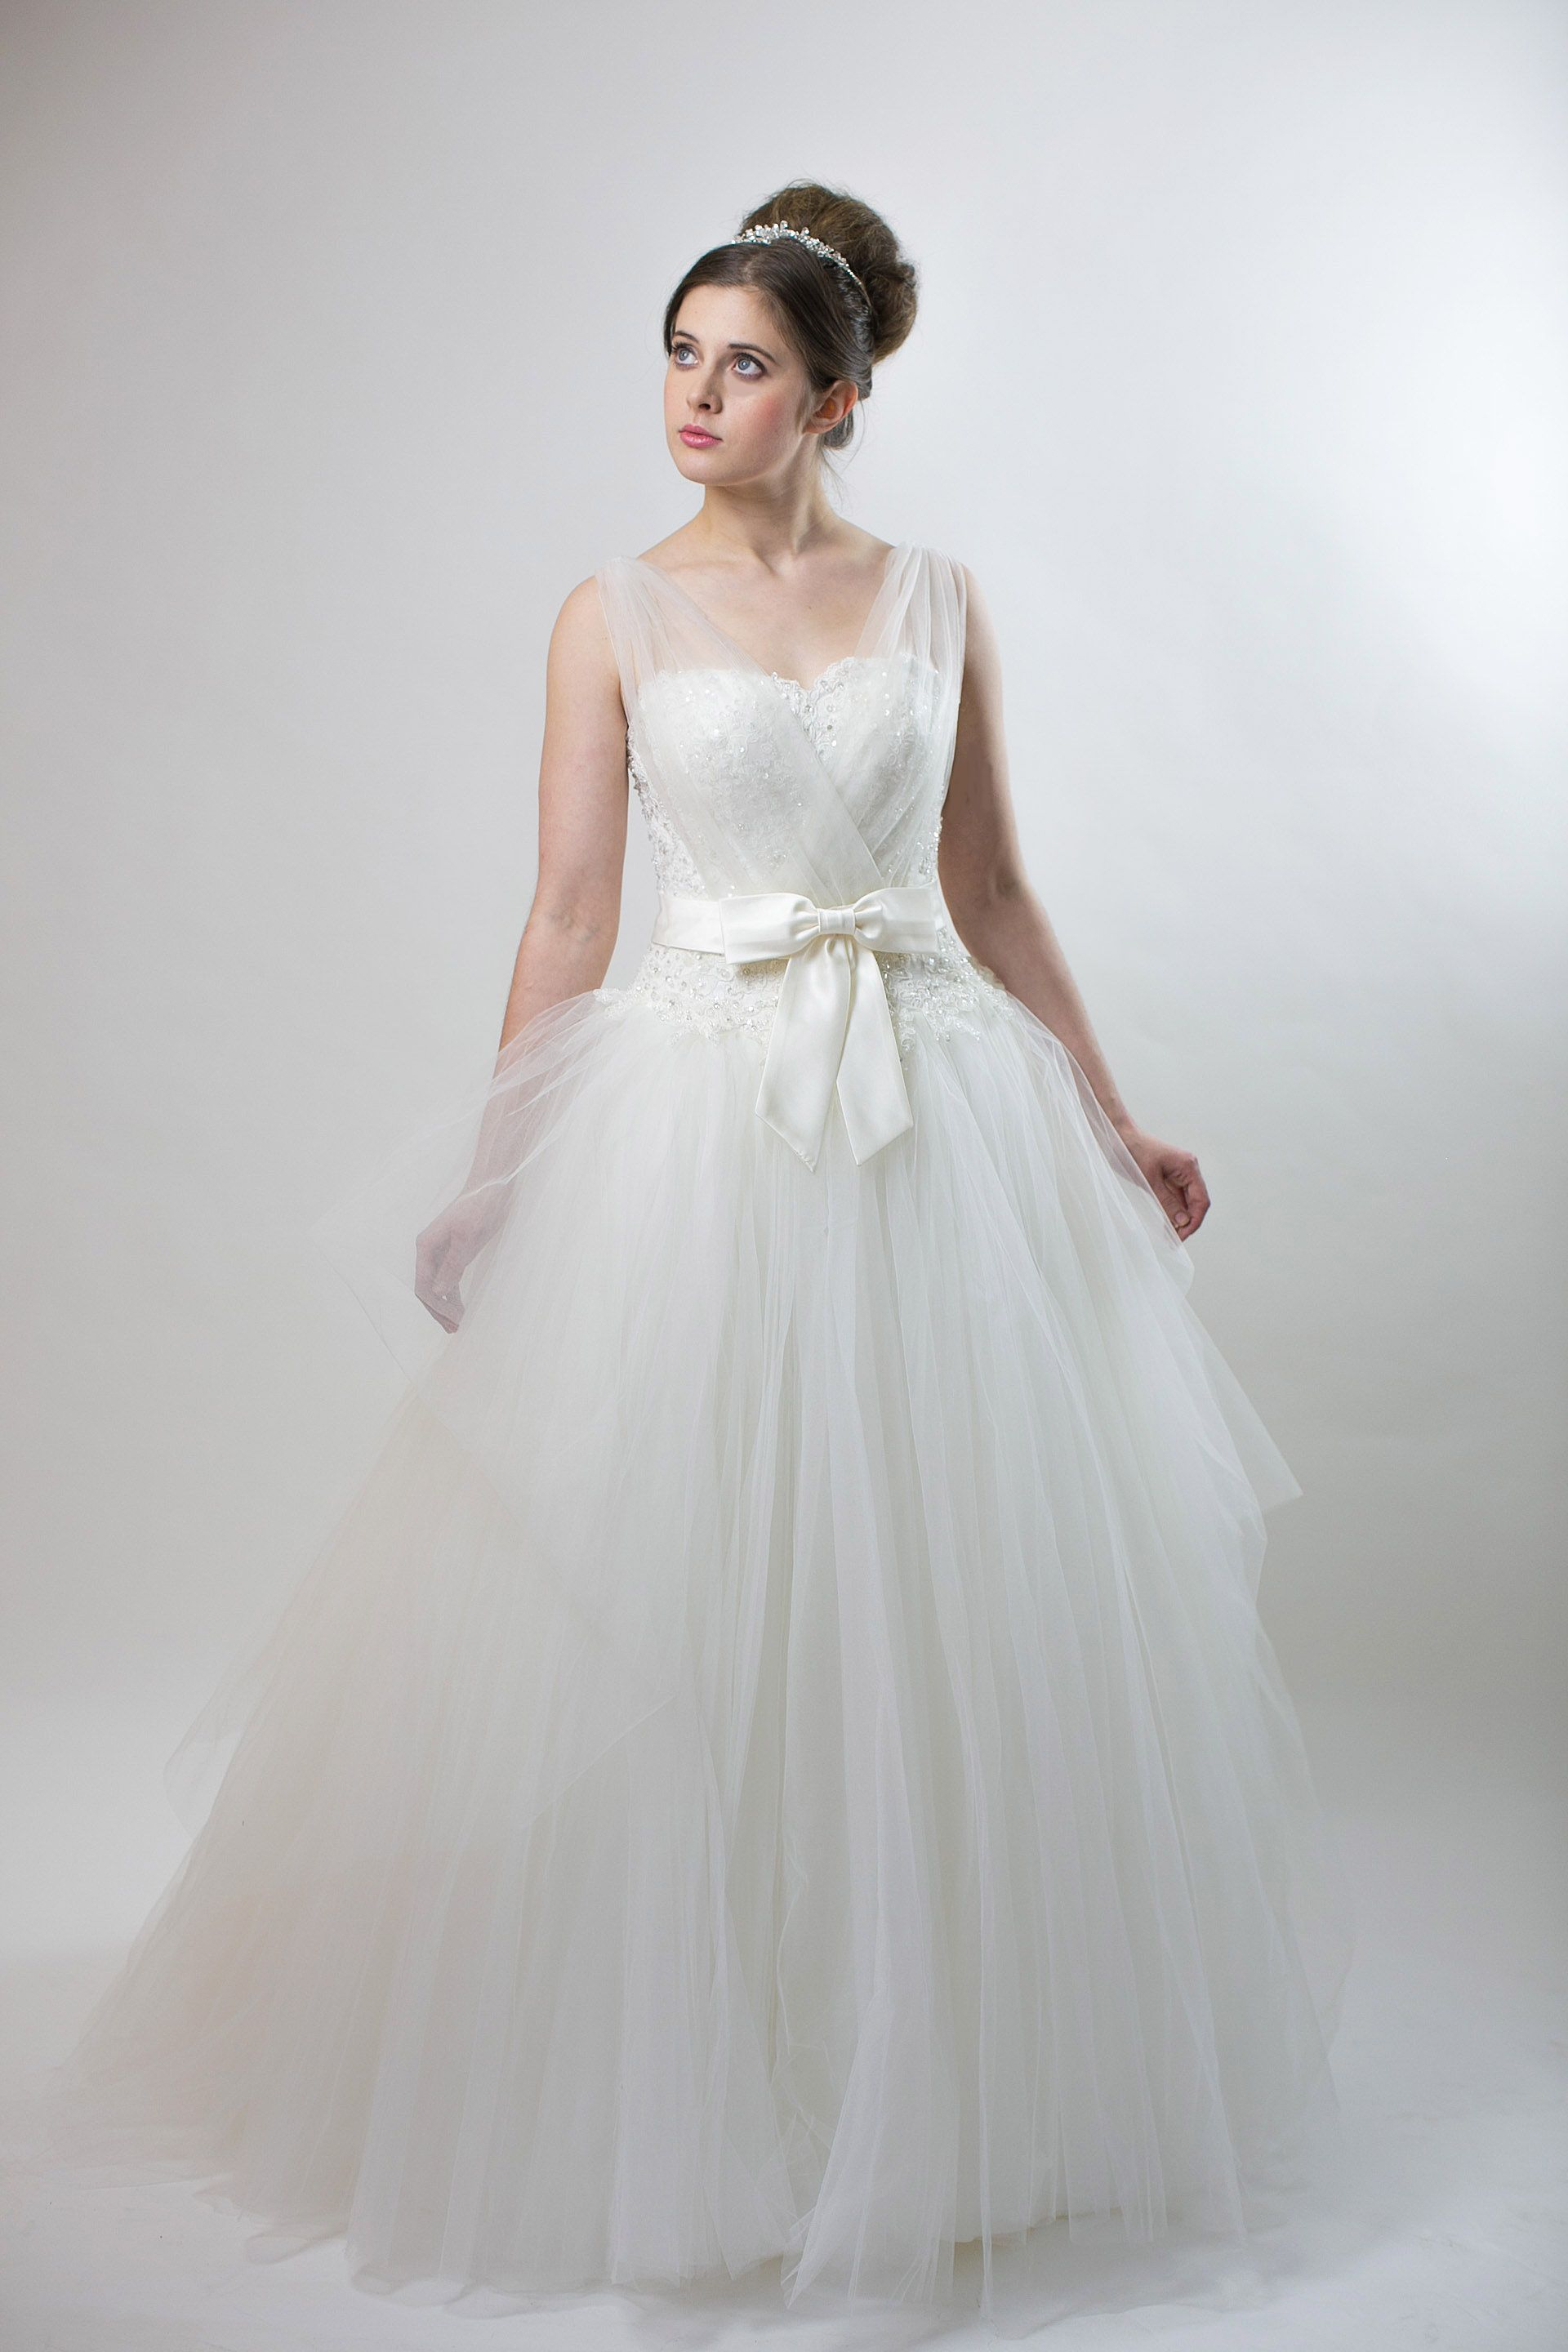 Dreamy and romantic hand made wedding gown with beaded